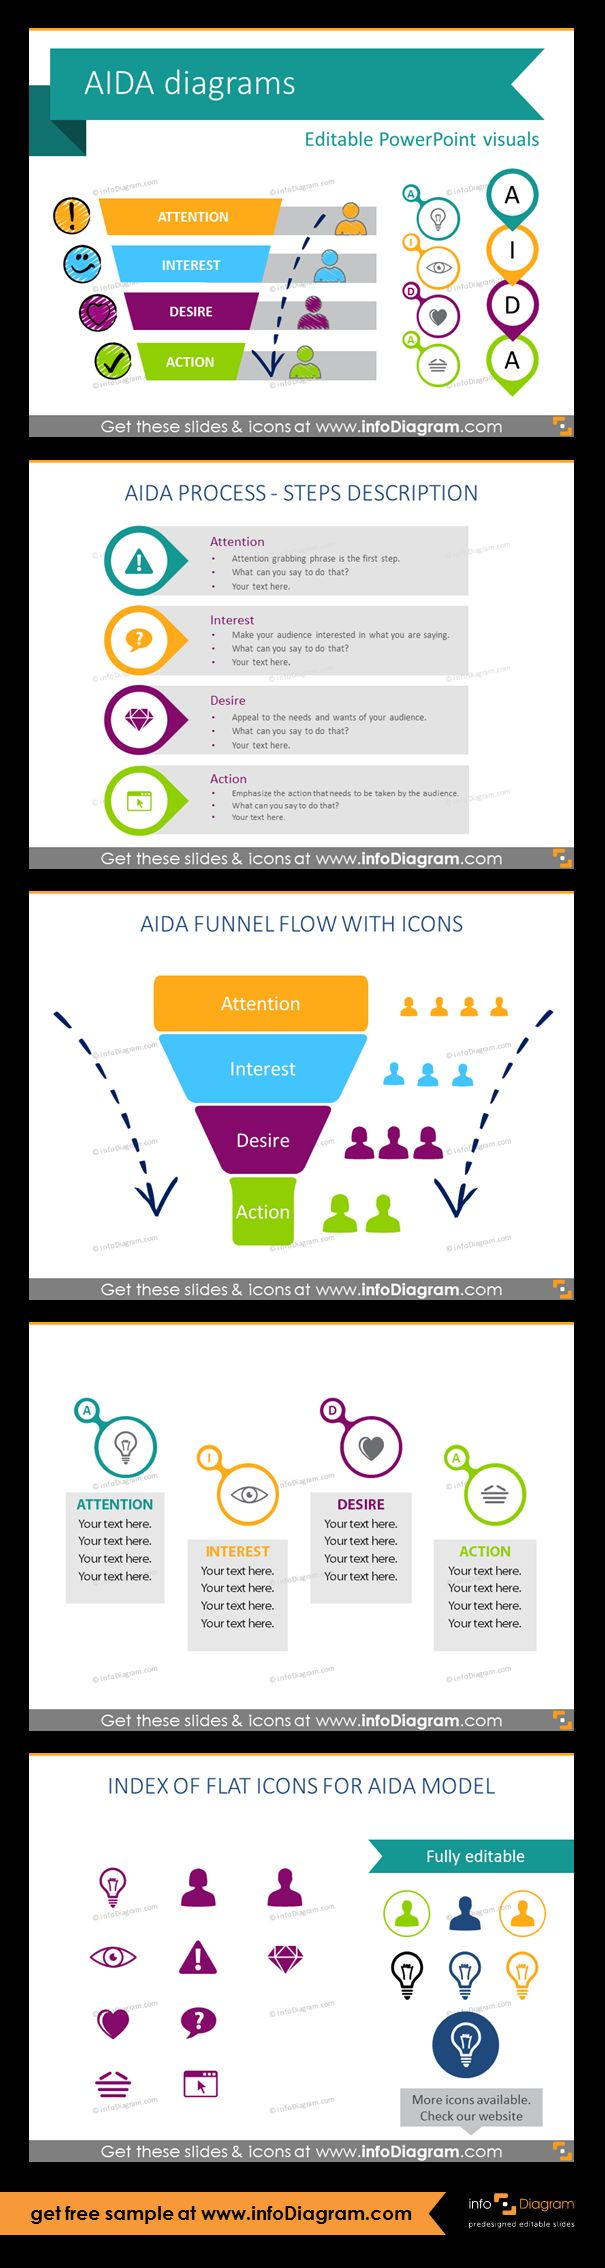 Collection AIDA marketing model diagrams as pre-designed PowerPoint slides. Fully editable vector shapes by using built-in PowerPoint tools (vector format). AIDA process overview and four slides of every AIDA steps with boxes for description: Attention, Interest, Desire, Action. Flat AIDA process funnel with text boxes. Index of AIDA icons: bulb, man, woman, eye, exclamation mark, diamond, heart, question mark, customer, mood, check sign.